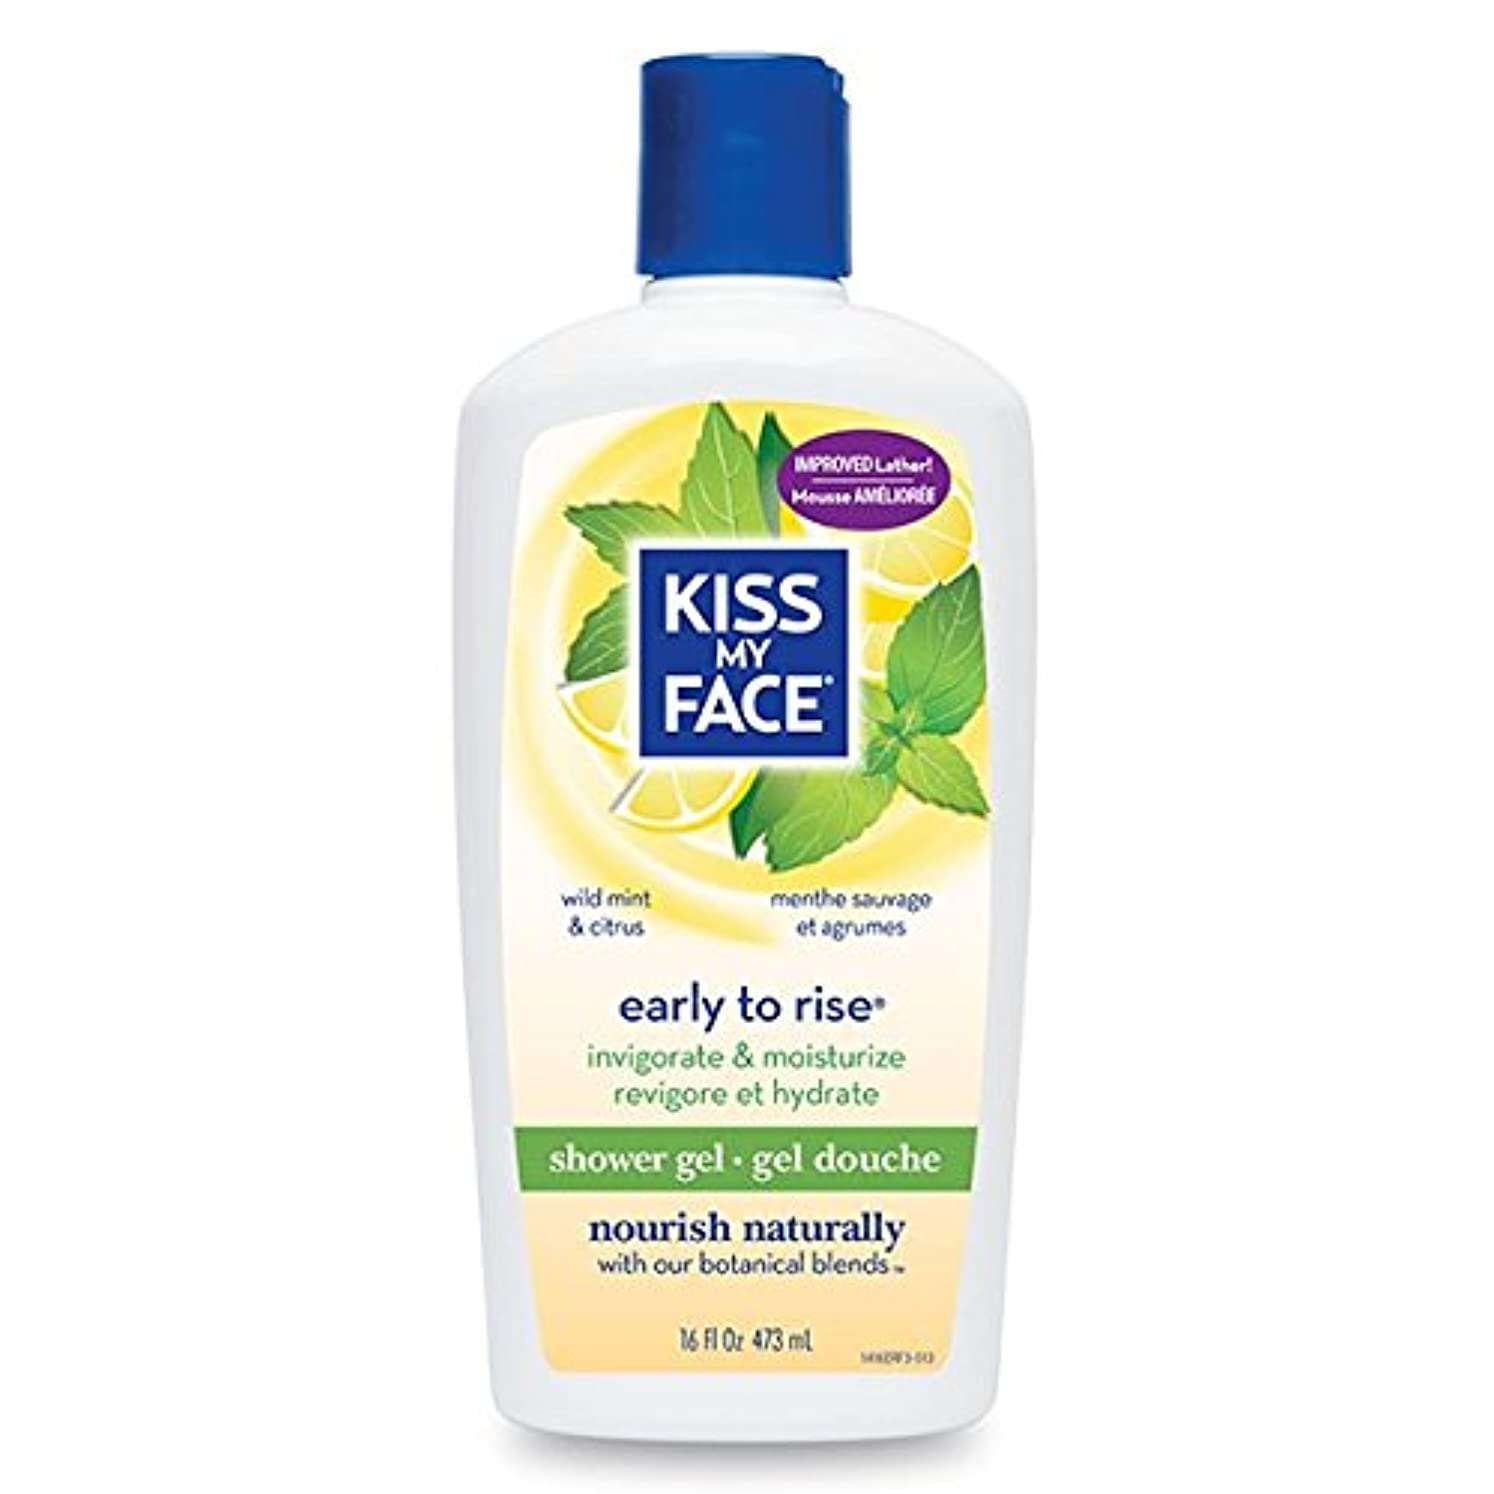 Bath & Shower Gel Early To Rise Wild Mint & Citrus - 16 oz by Kiss My Face